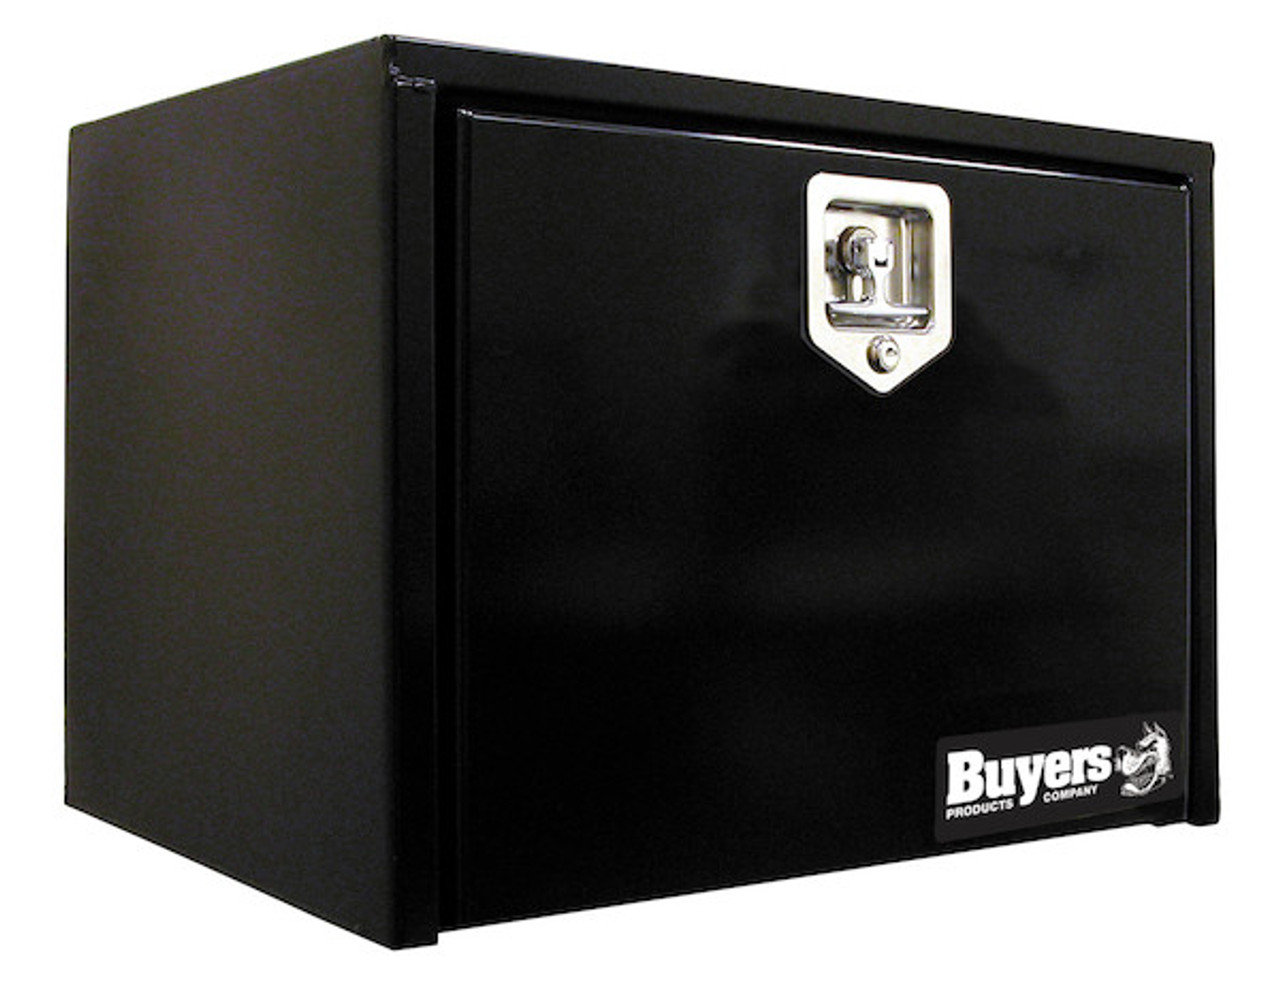 1703330 BUYERS PRODUCTS BLACK STEEL UNDERBODY TRUCK BOX WITH T-LATCH TOOLBOX